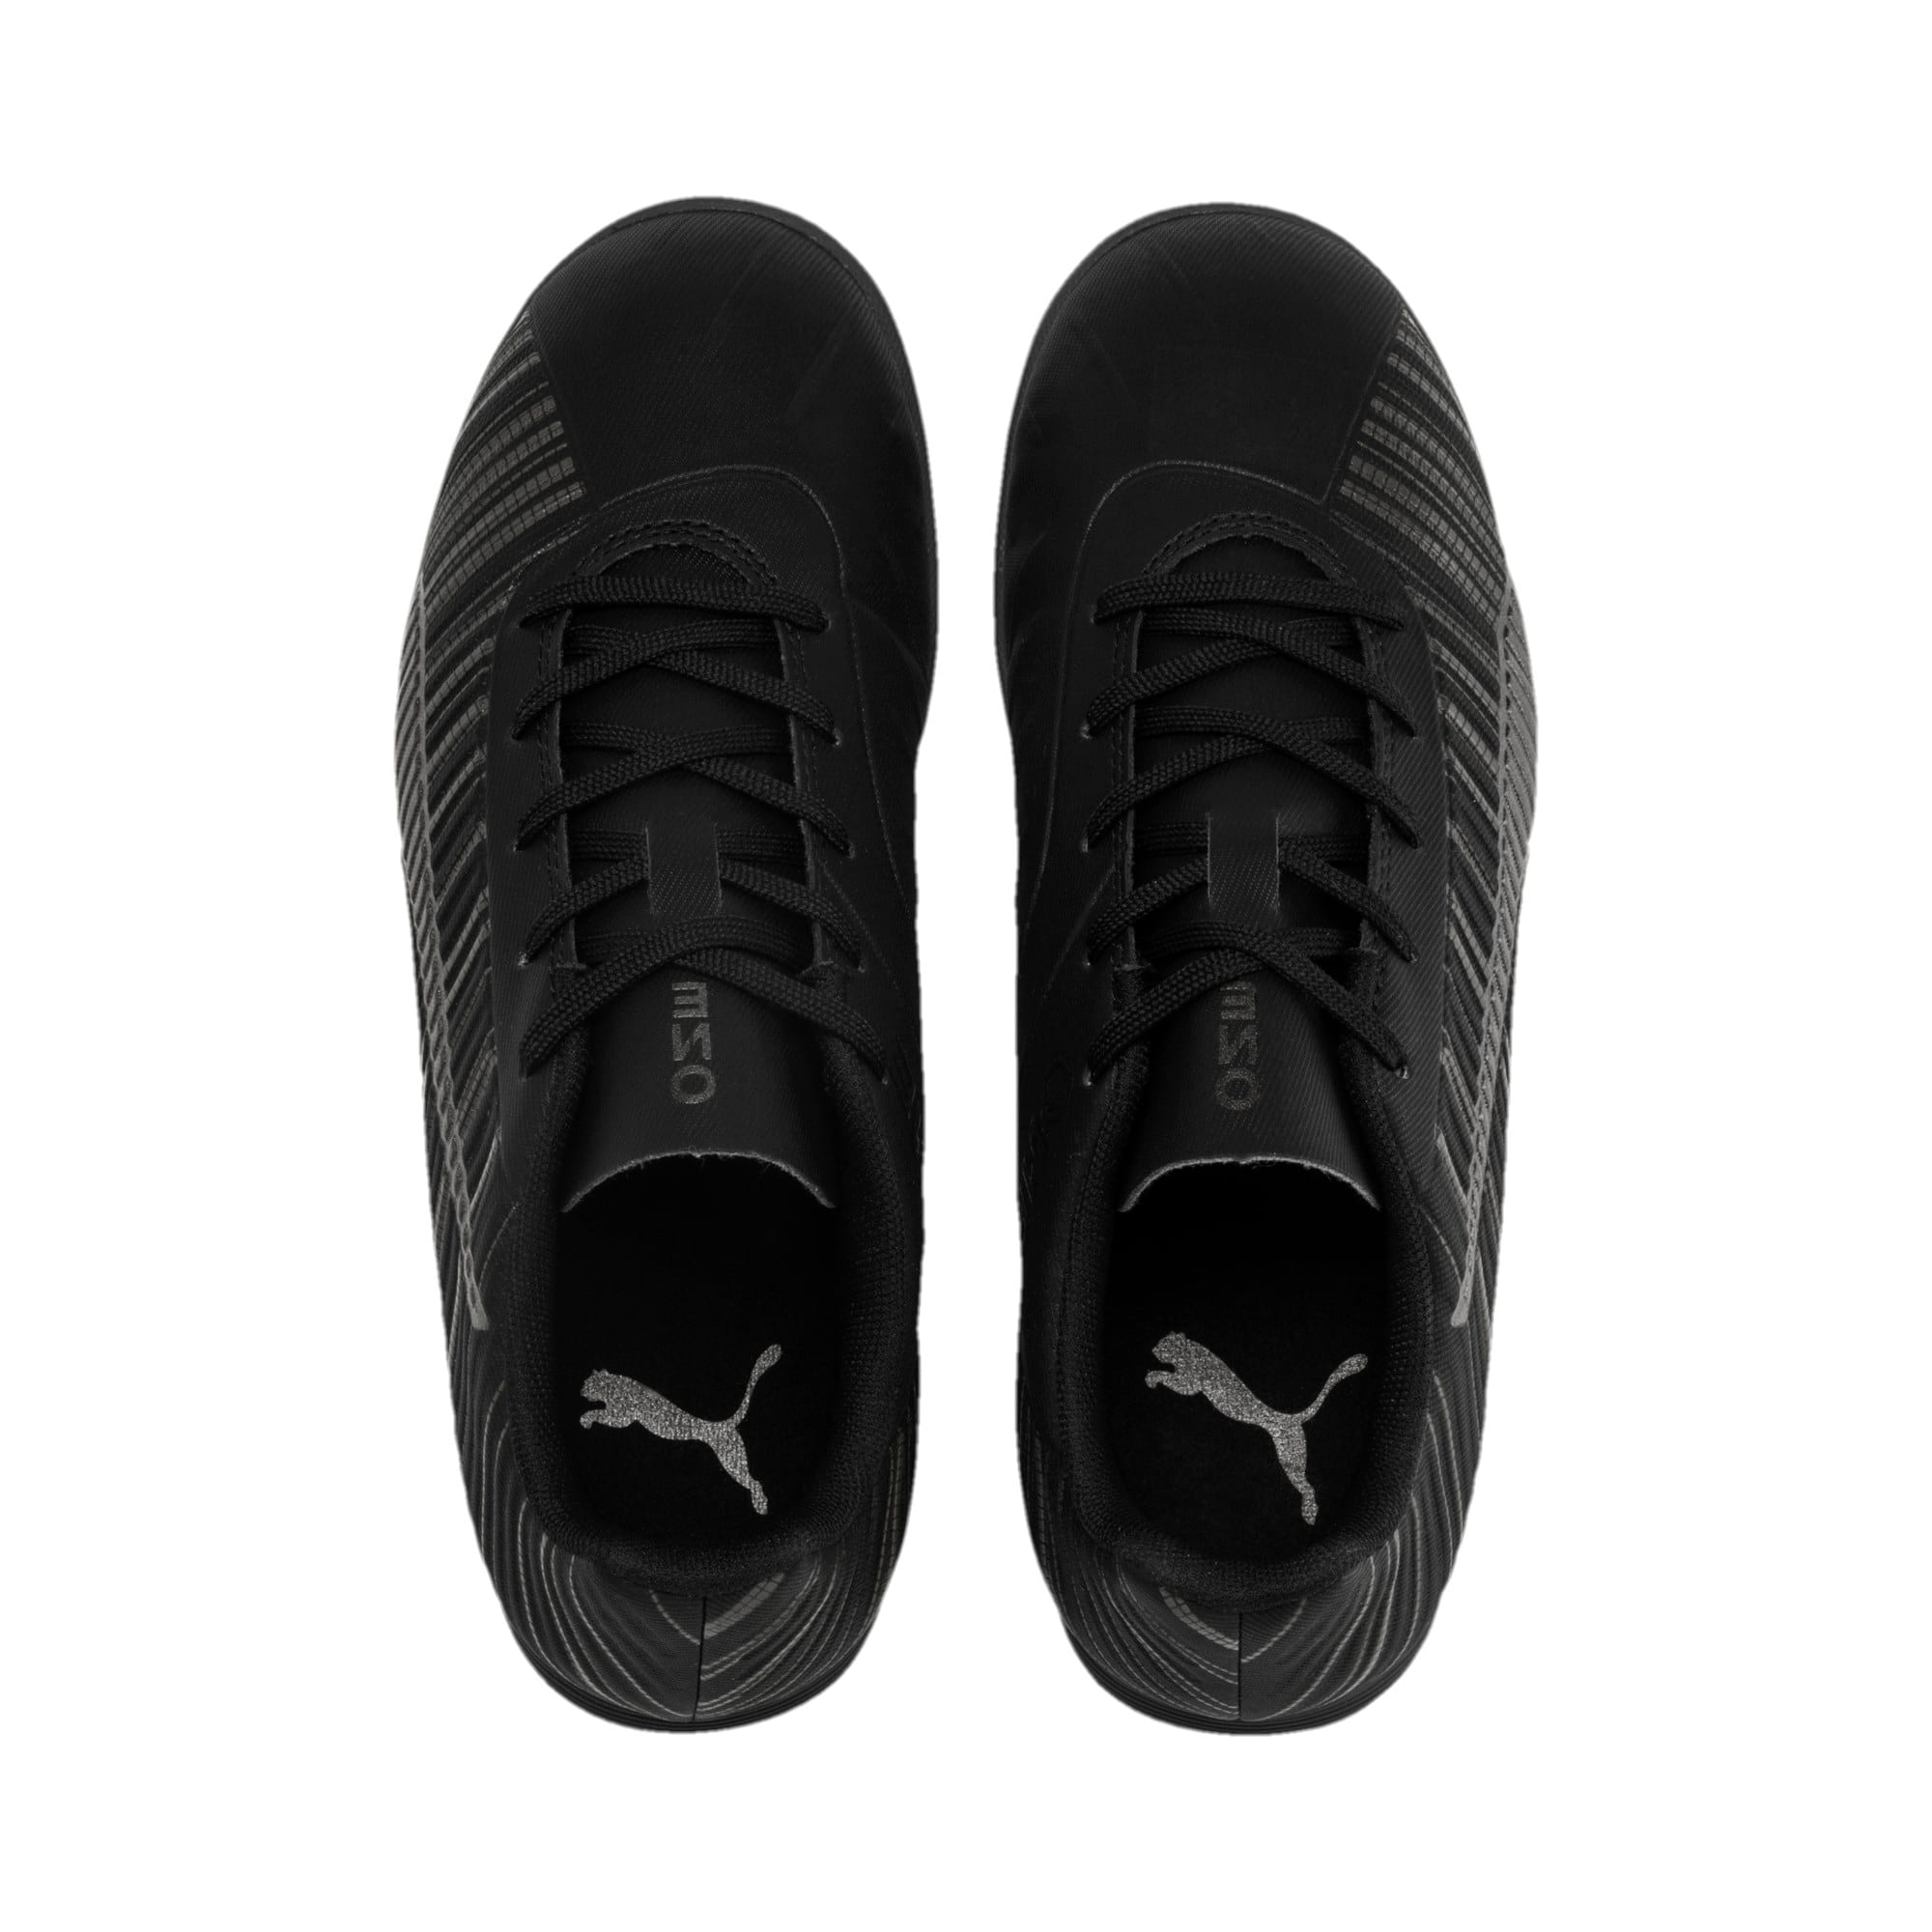 Thumbnail 6 of PUMA ONE 5.4 TT Youth Football Boots, Black-Black-Puma Aged Silver, medium